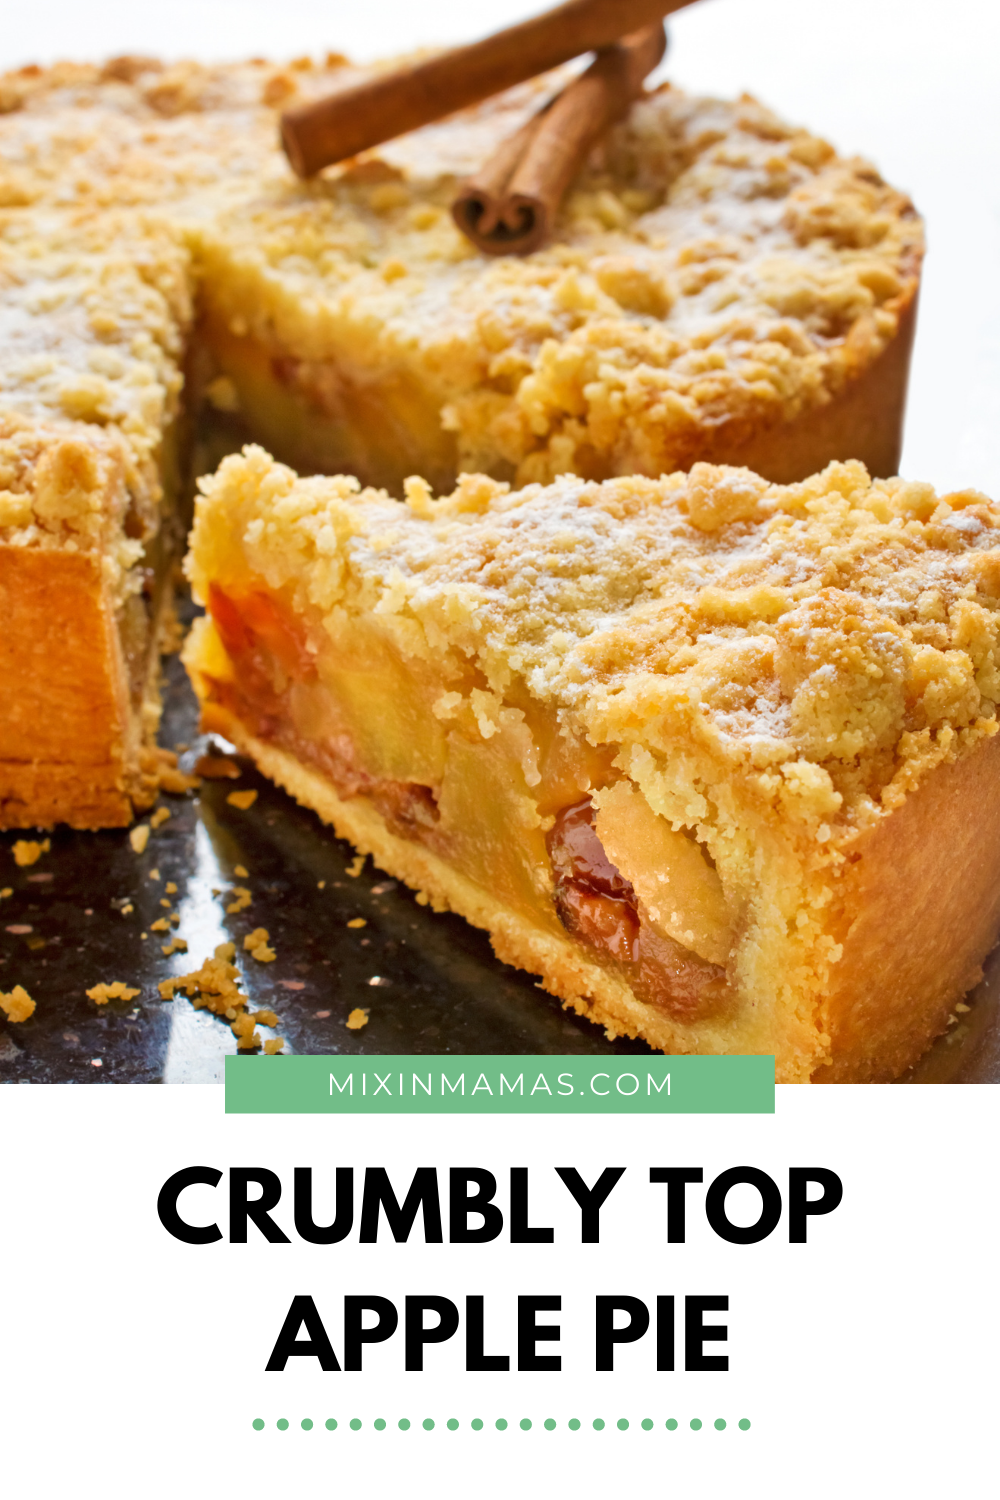 crumbly top apple pie